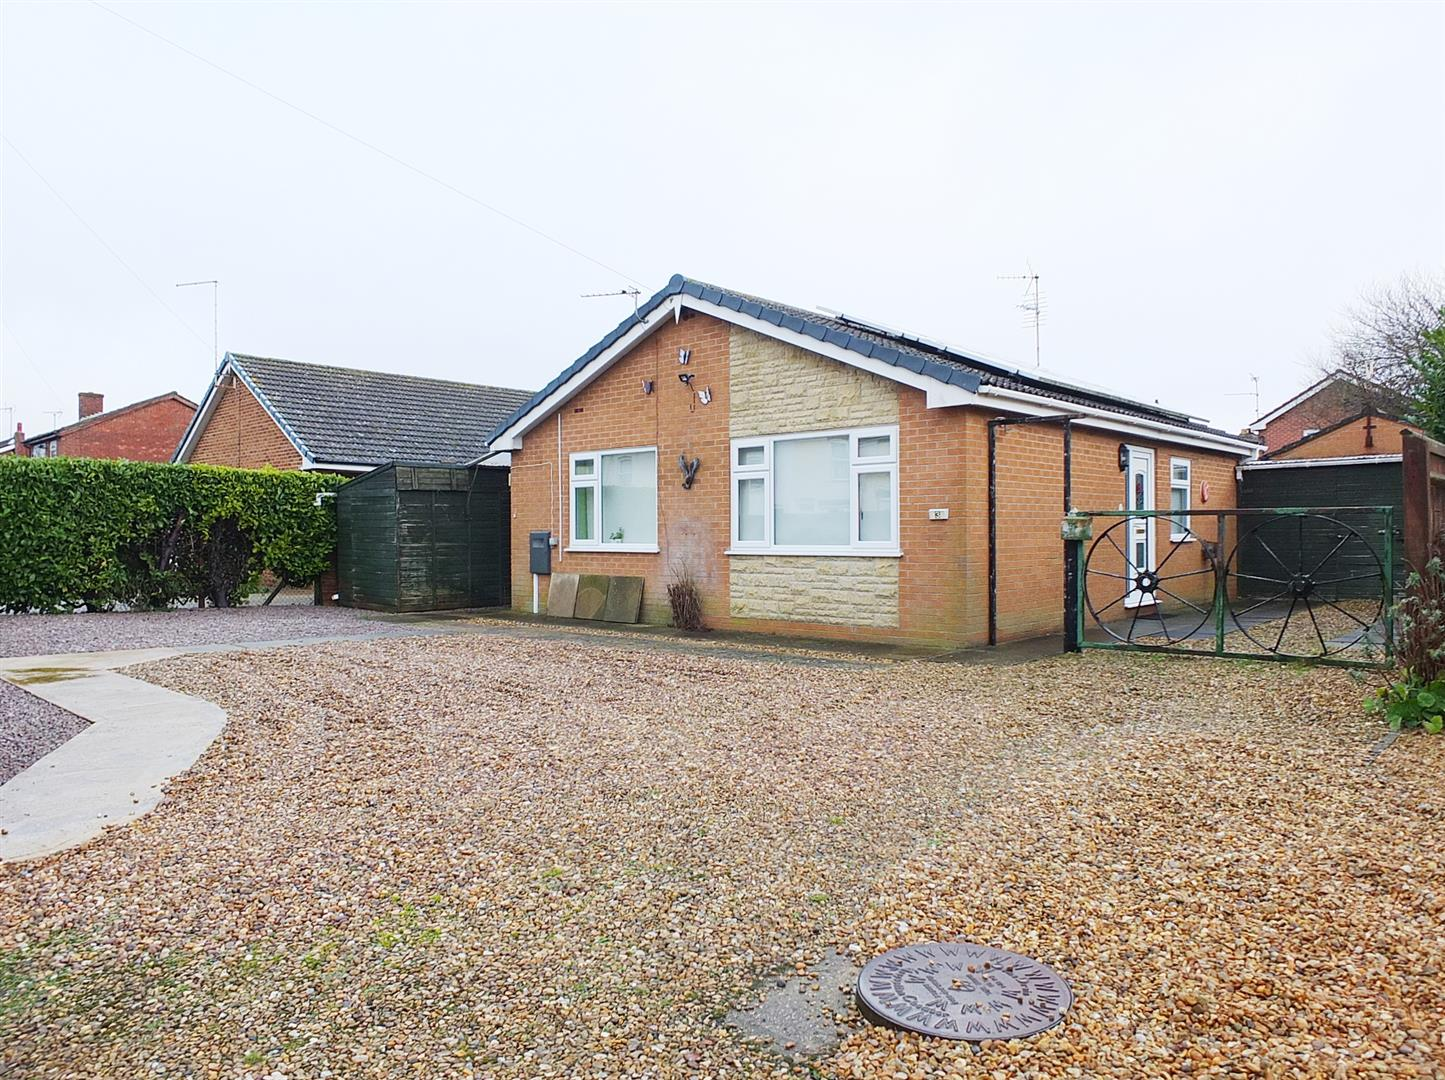 2 bed detached bungalow for sale in Sutton Bridge Spalding, PE12 9ST, PE12